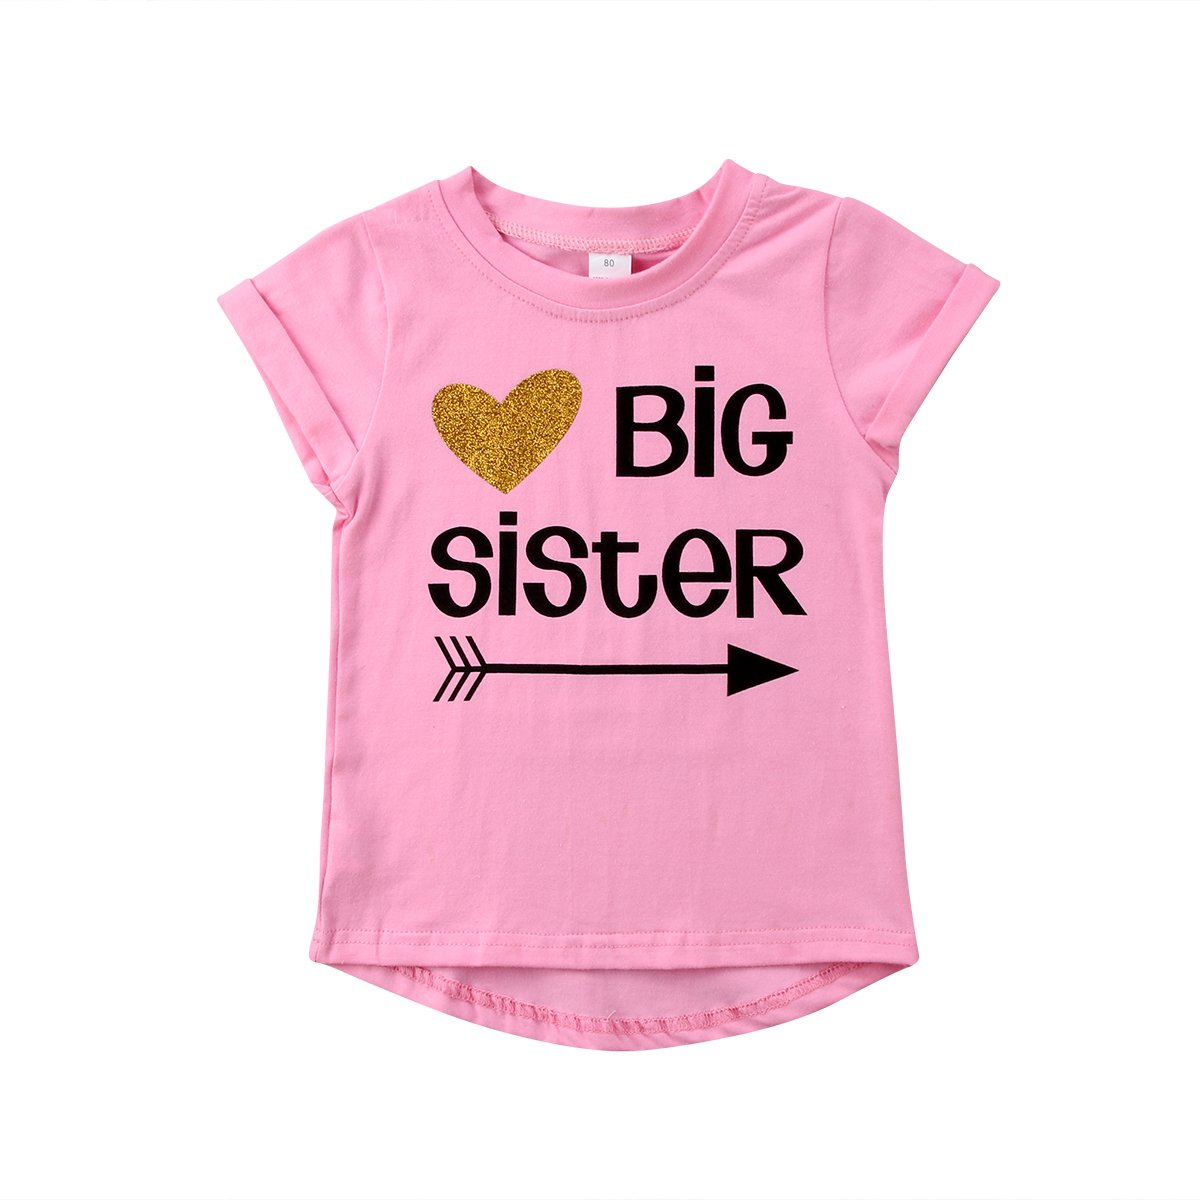 Big Sister & Little Sister Clothing Family Matching Girls Fitted T-Shirt & Toddler Baby Girls Bodysuit Set (Big Sister Shirt, 1-2Y)